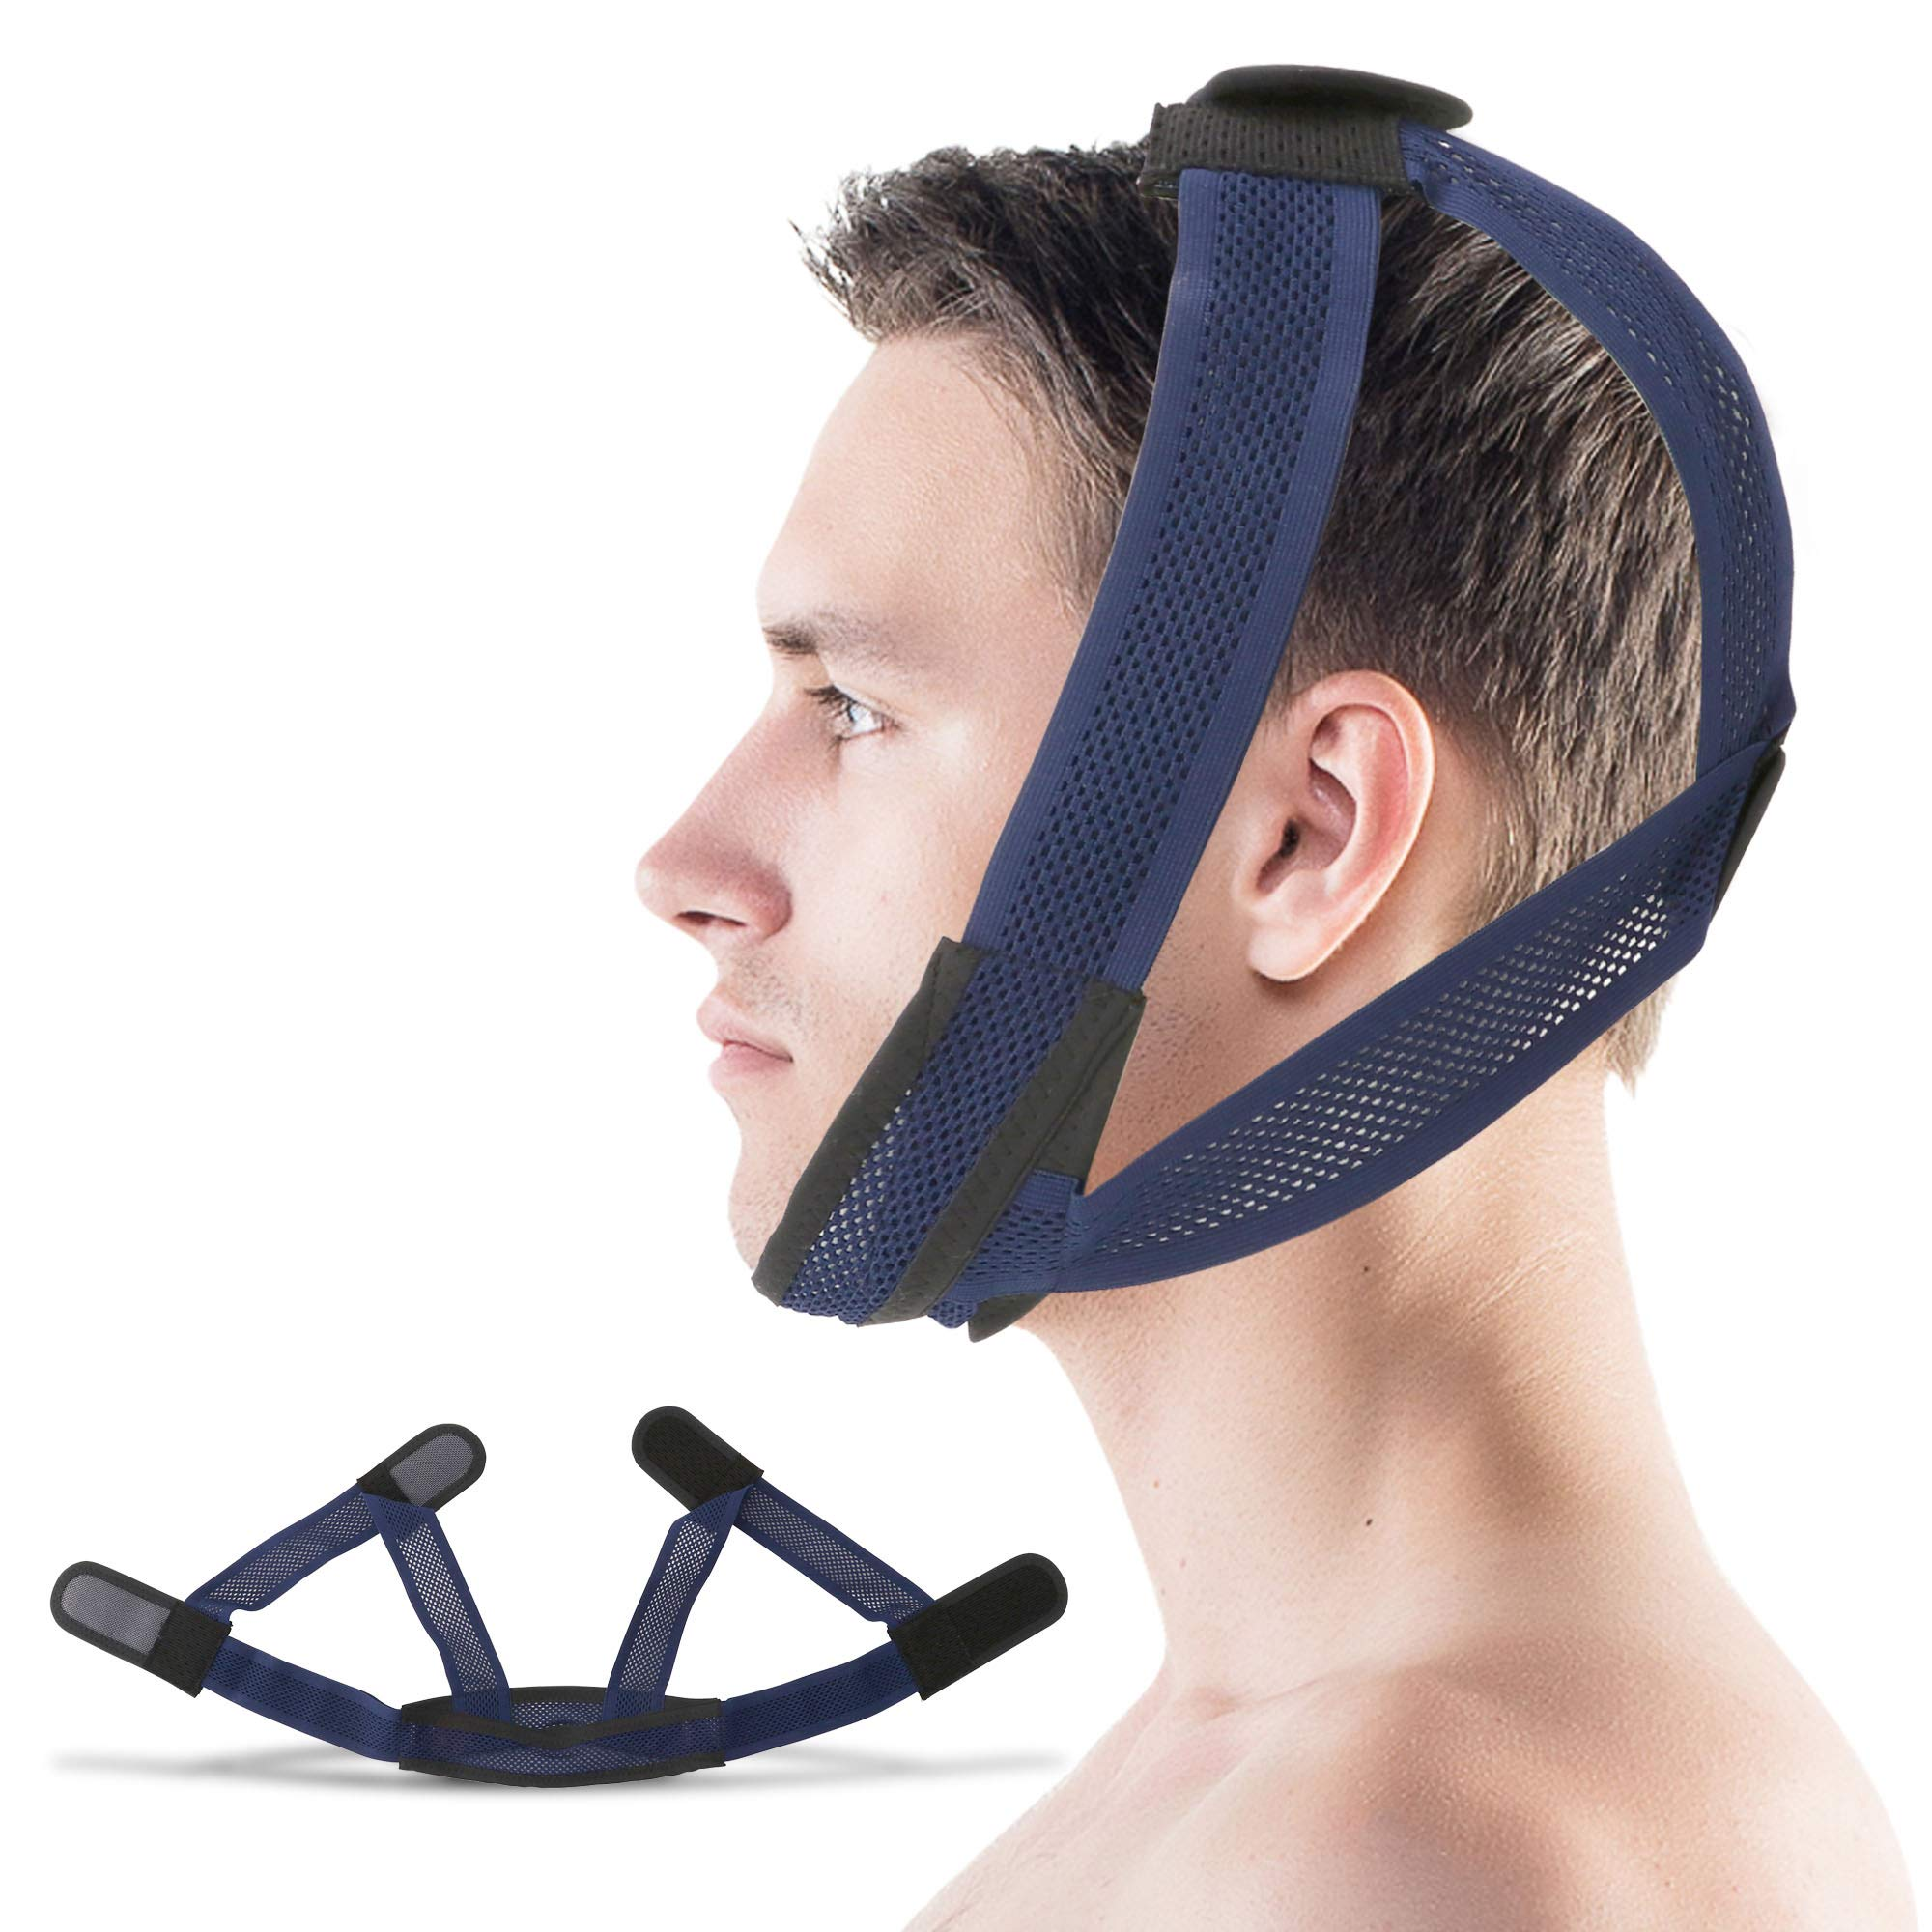 Supotto Belt Chin Strap for Mouth Breather S size| Portable Anti-Snore Sleeping Device | Sleep Care & Snoring Accessories | Quiet Breathing & Jaw Aid Equipment by SUPOTTO BELT